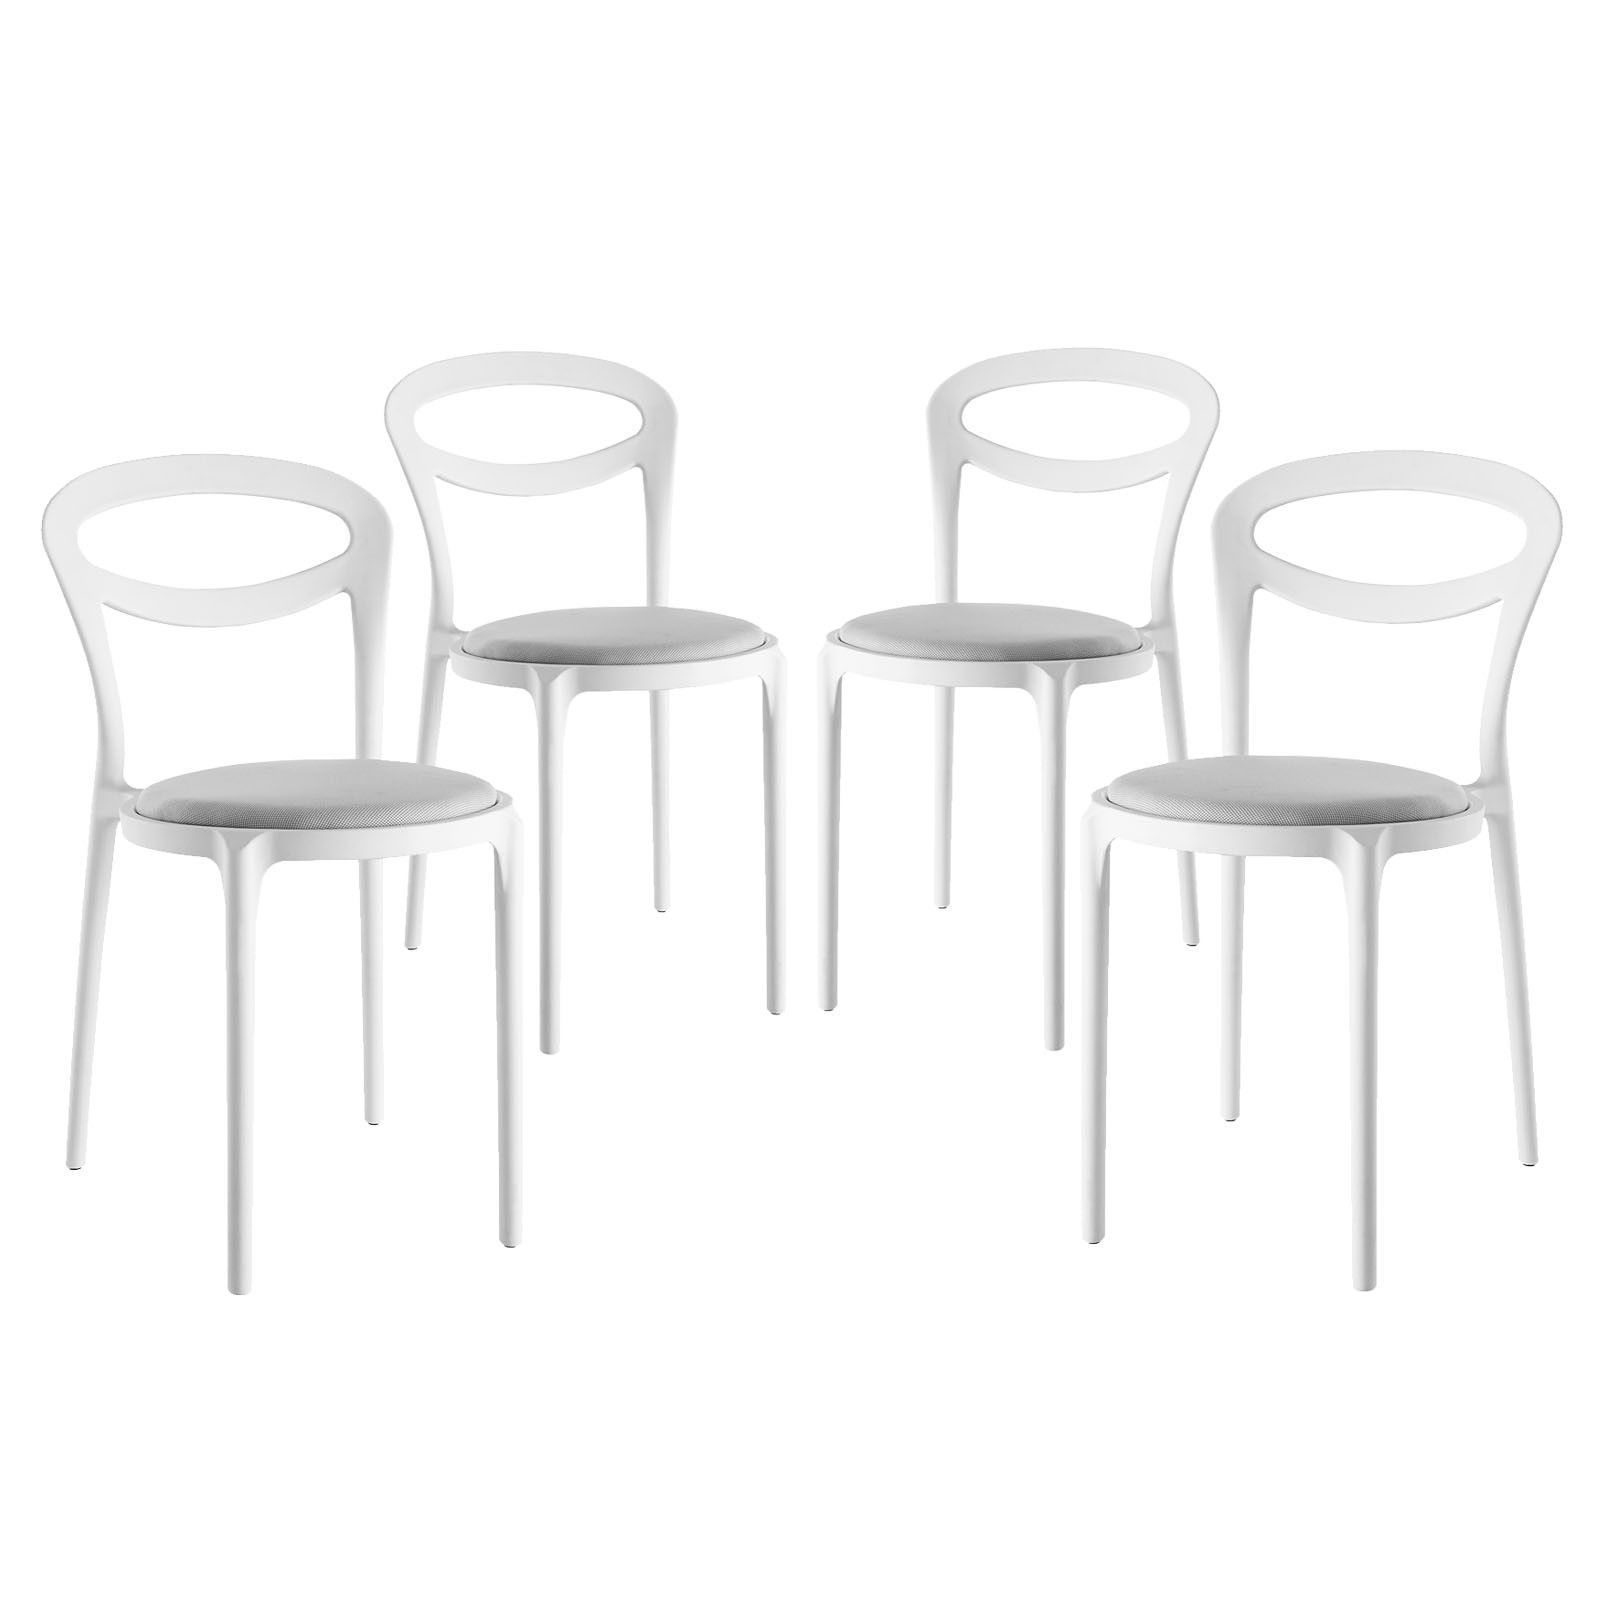 Assist Dining Side Chair Set of 4